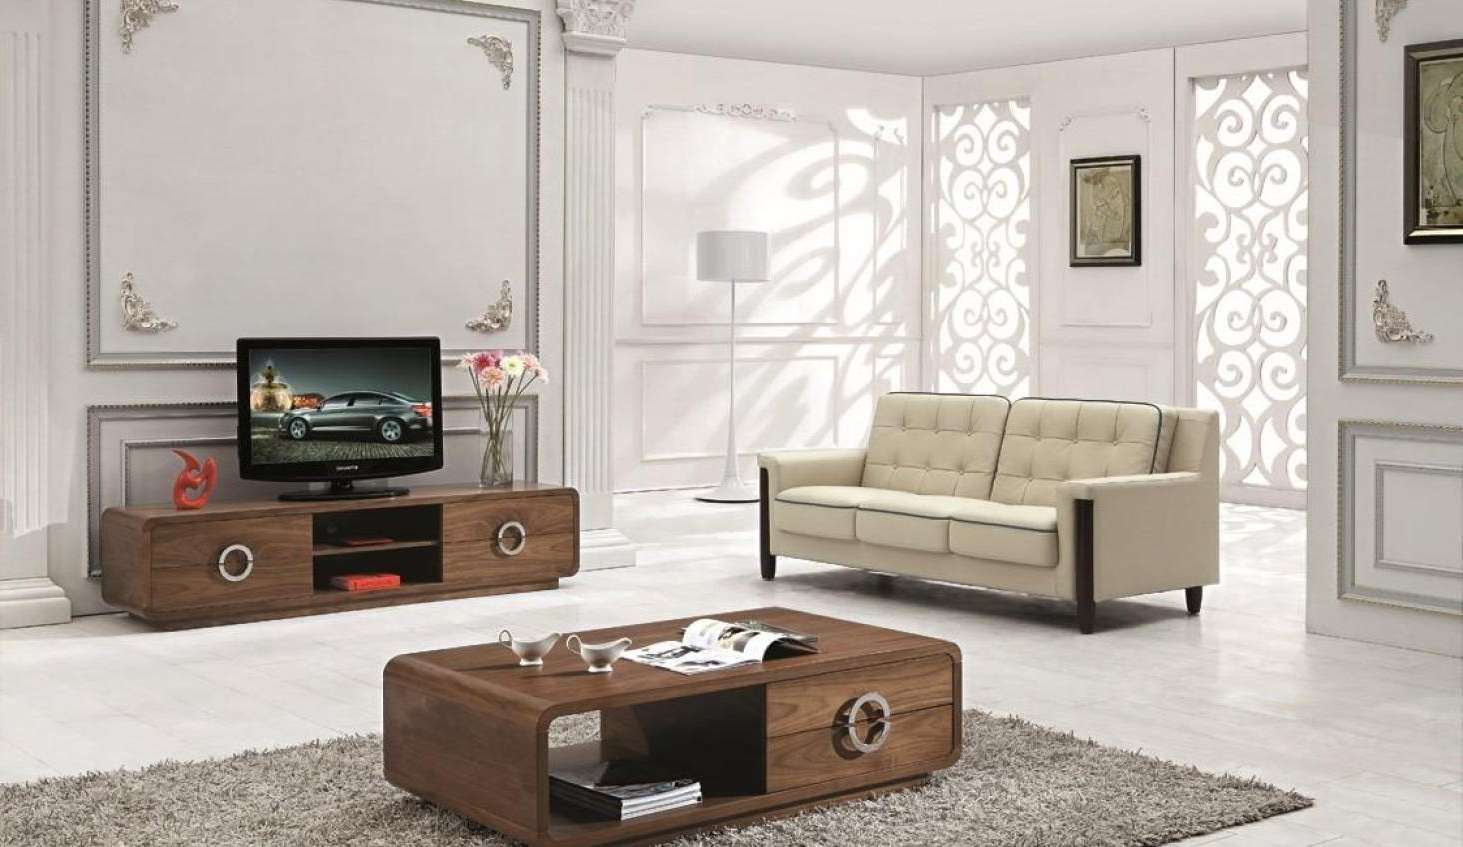 Tv : Matching White Coffee Table And Tv Stand | Coffee Tables With Regard To Coffee Tables And Tv Stands Matching (View 19 of 20)